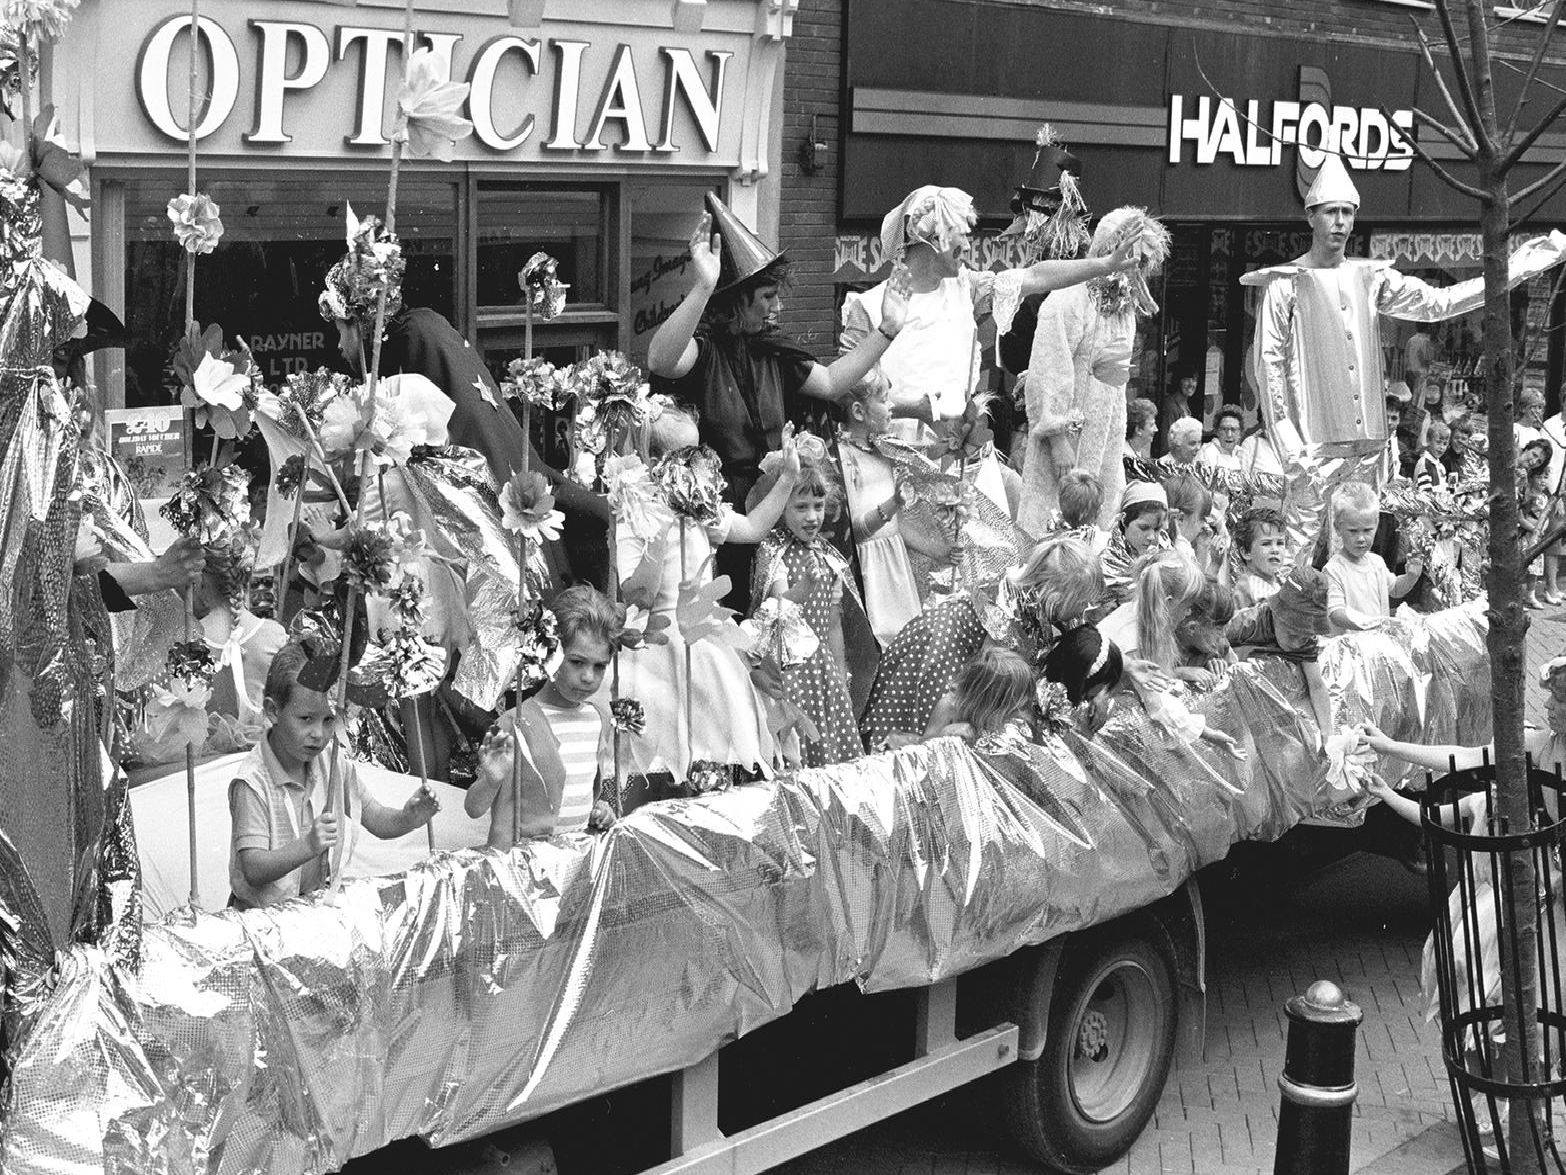 1989: This magnificent float full of characters from the Wizard of Oz was part of the Mansfield Carnival. Are you on this picture?